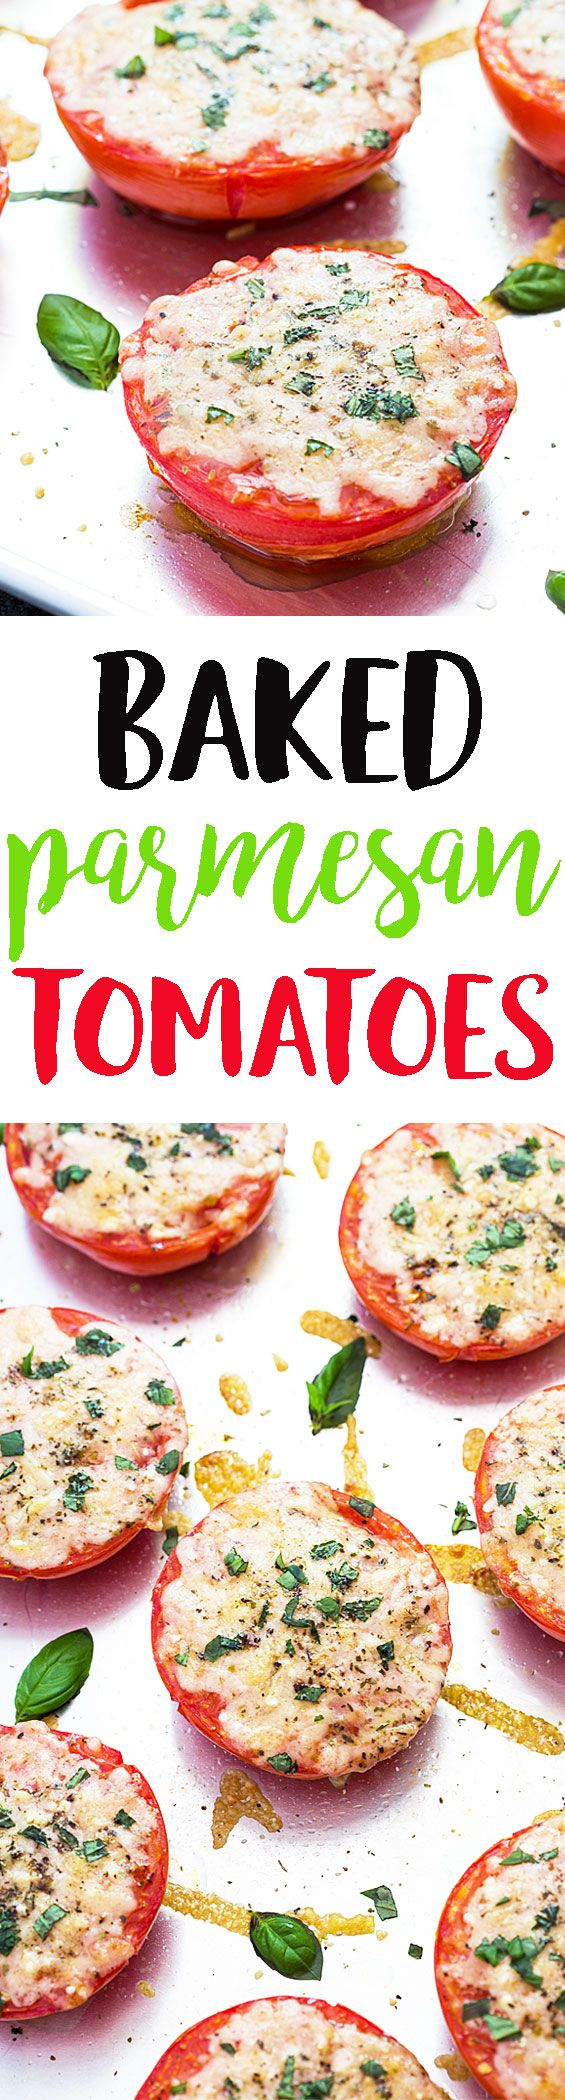 Baked Parmesan Tomatoes - These are so amazing! Baked tomatoes with a cheesy herb topping ready in 20 minutes!